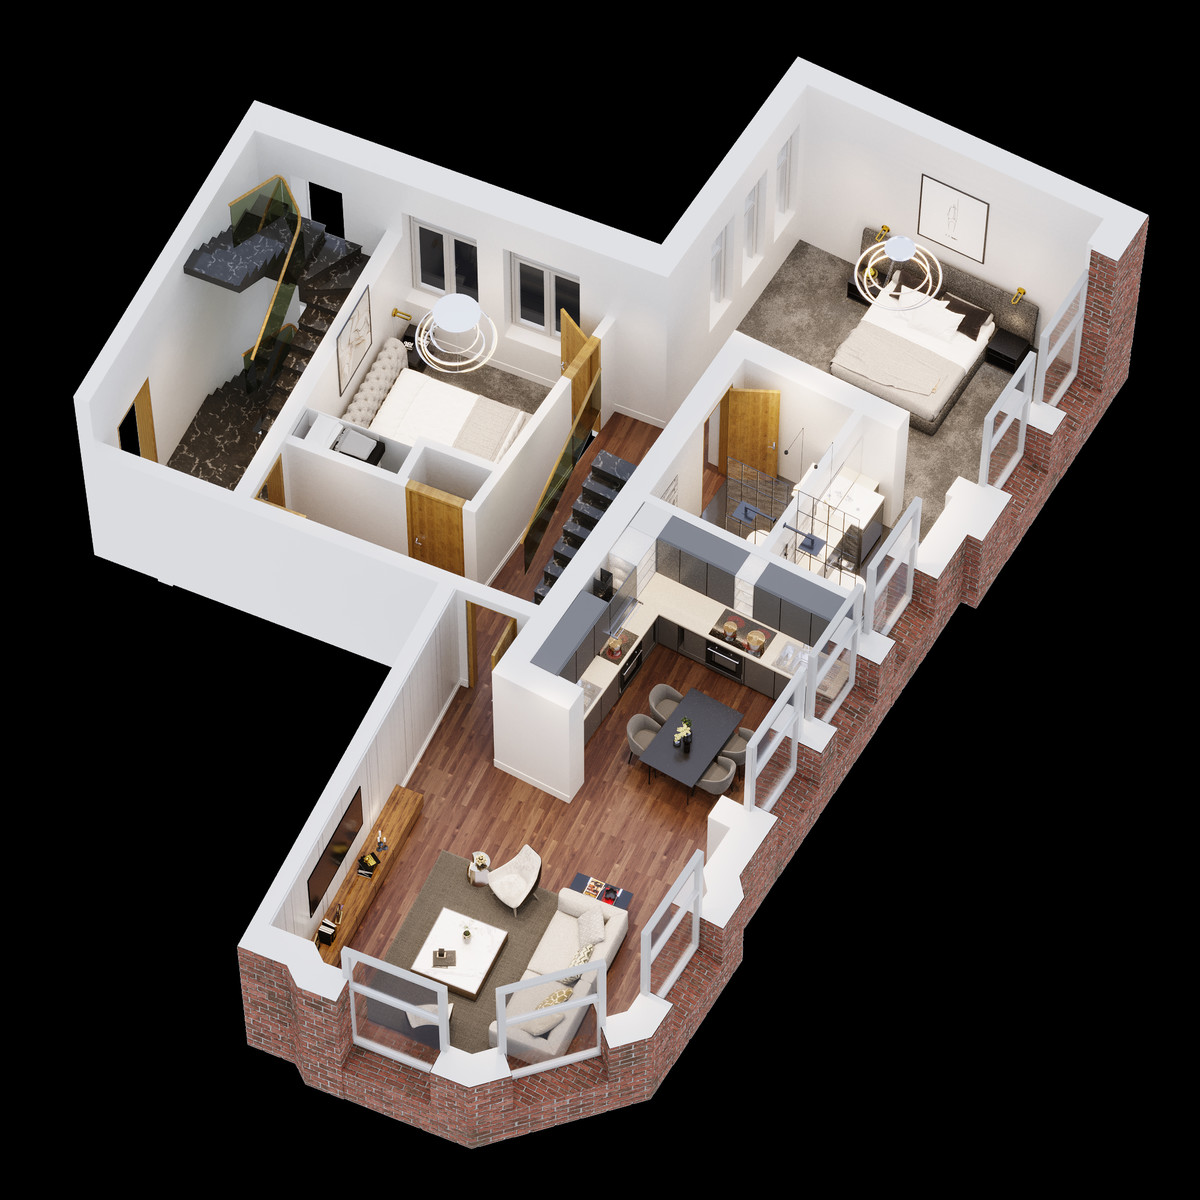 Sydenham Place, 26B Tenby Street, Jewellery Quarter floorplan 1 of 4